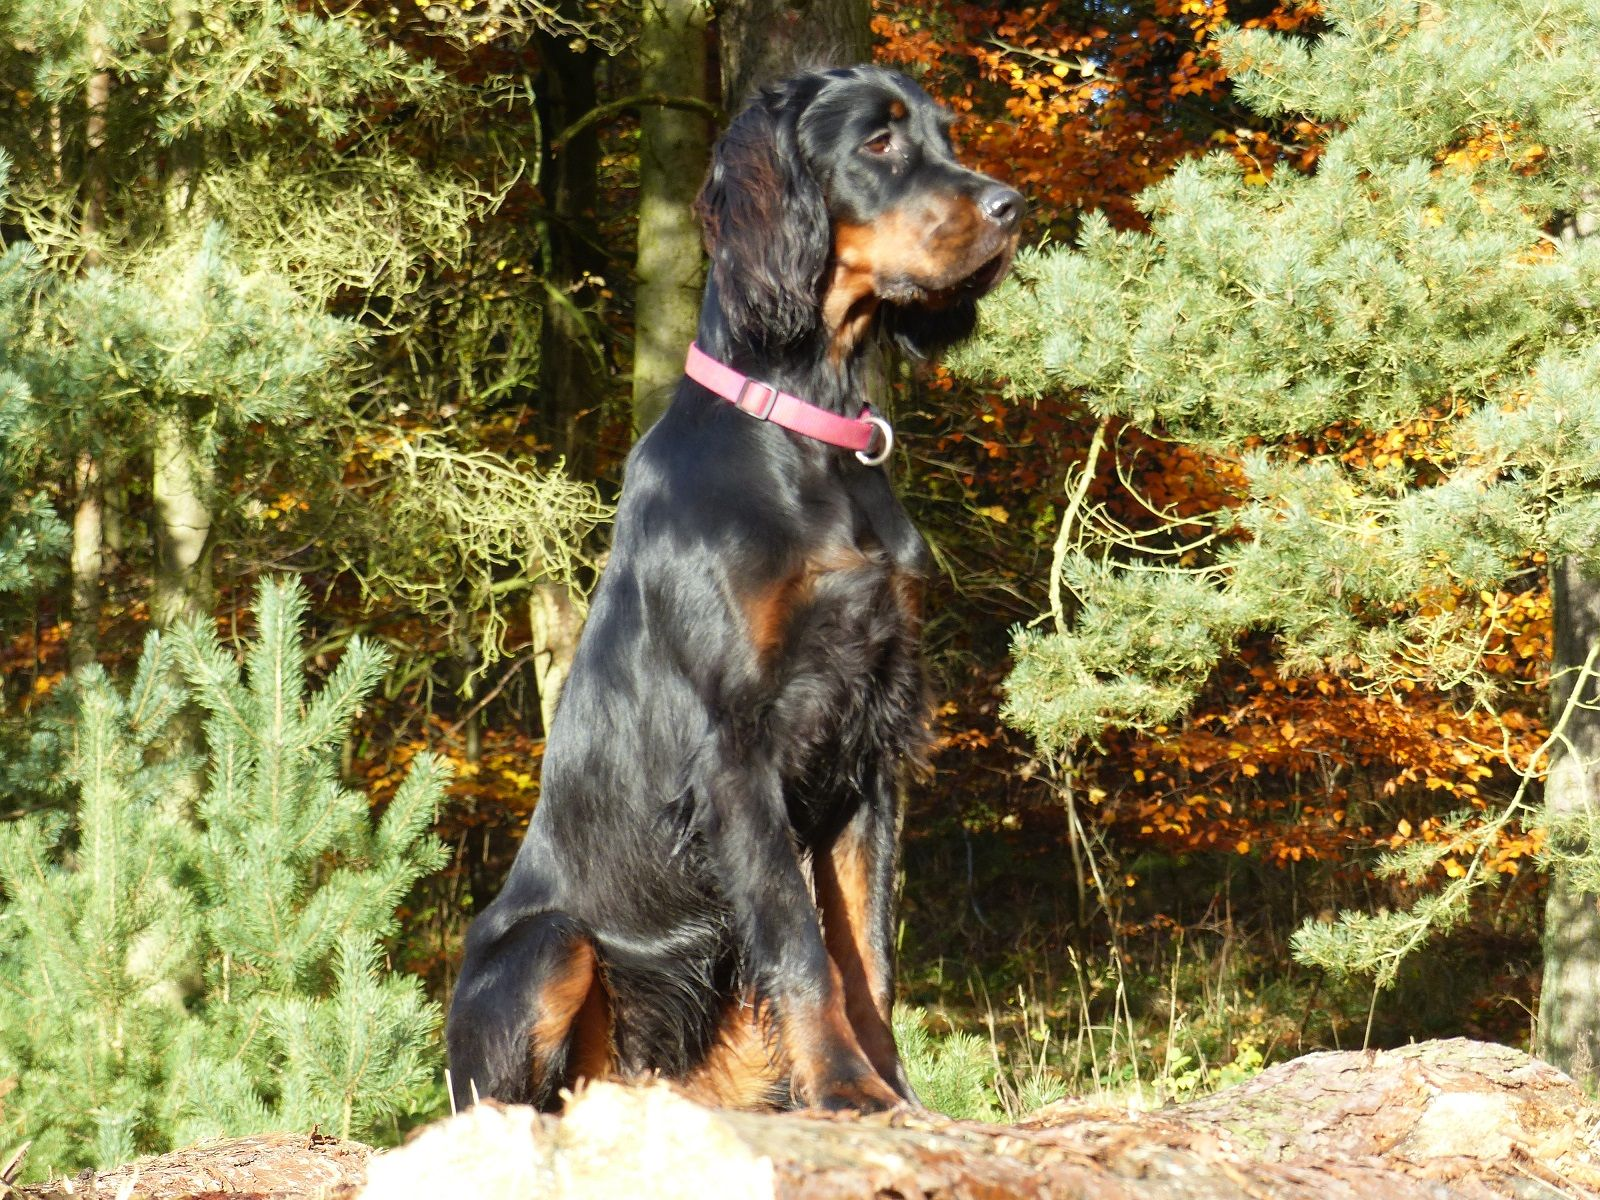 Galerie In 2020 With Images Gordon Setter Dogs Animals